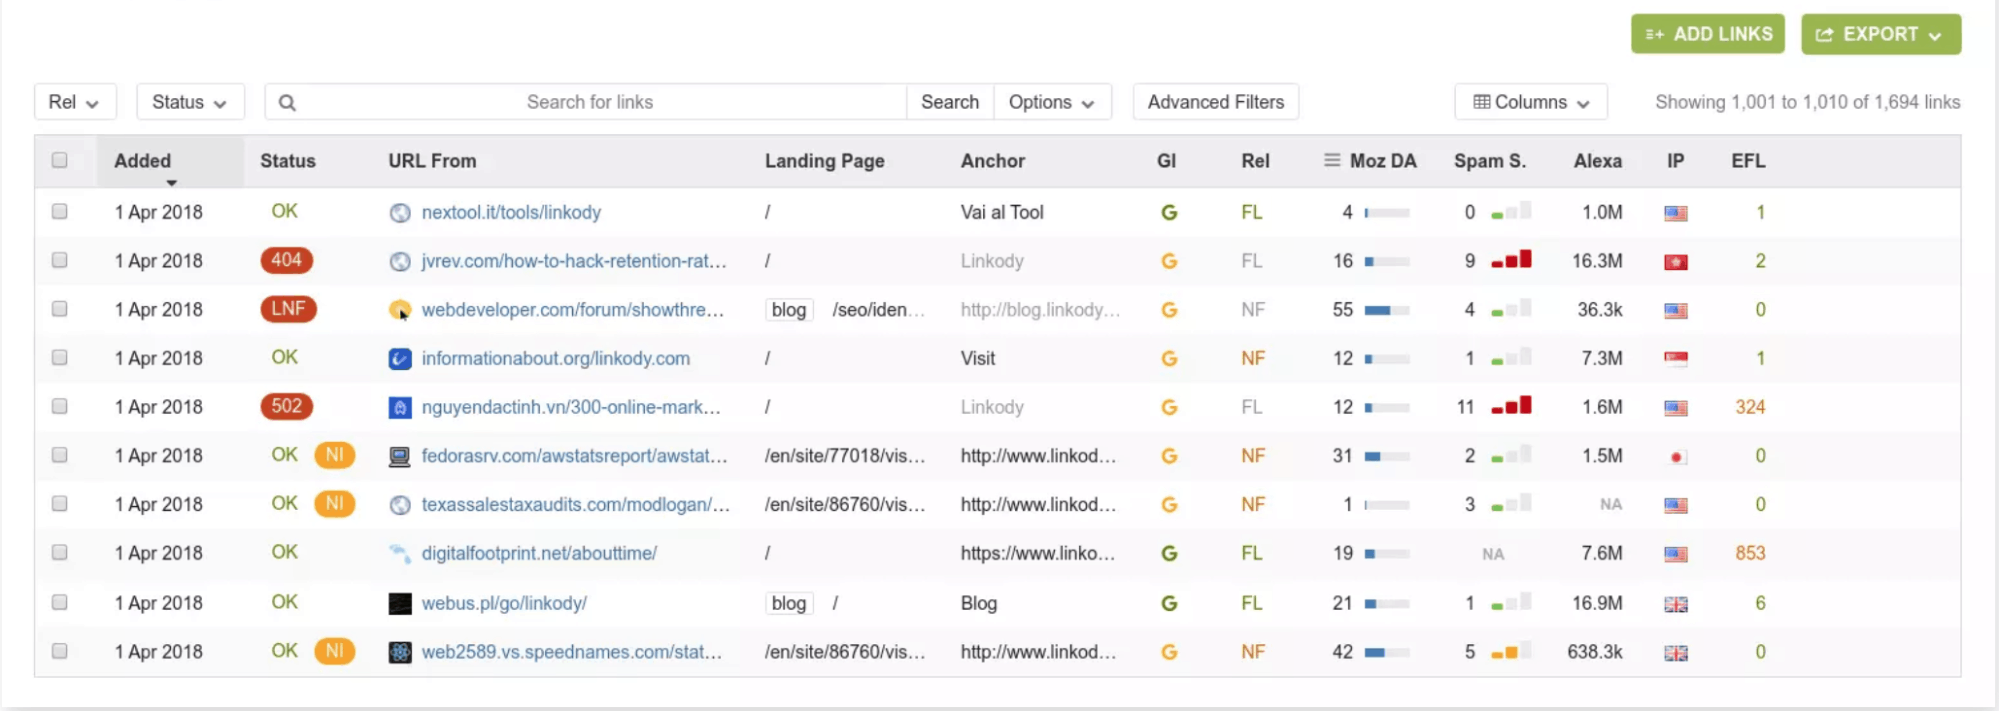 Linkody Sample Search Results on Dashboard